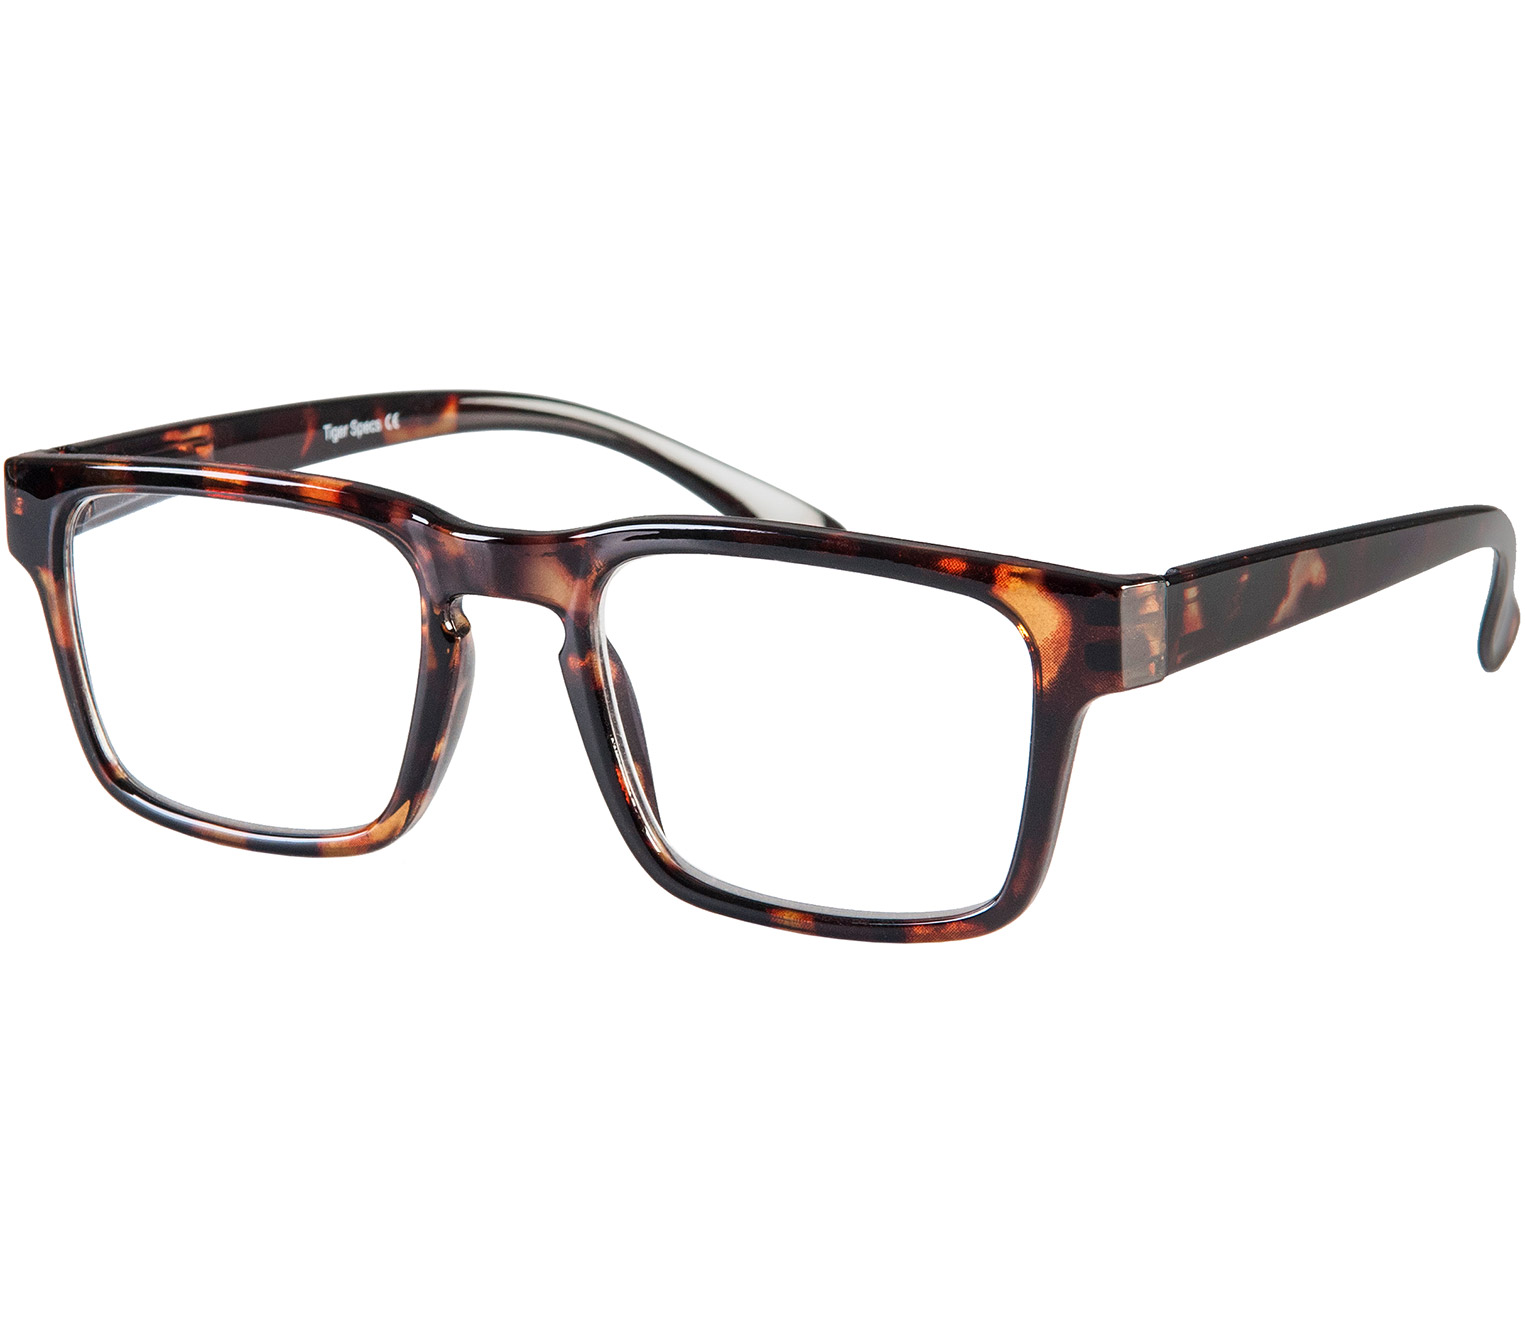 Main Image (Angle) - Storm (Tortoiseshell) Retro Reading Glasses